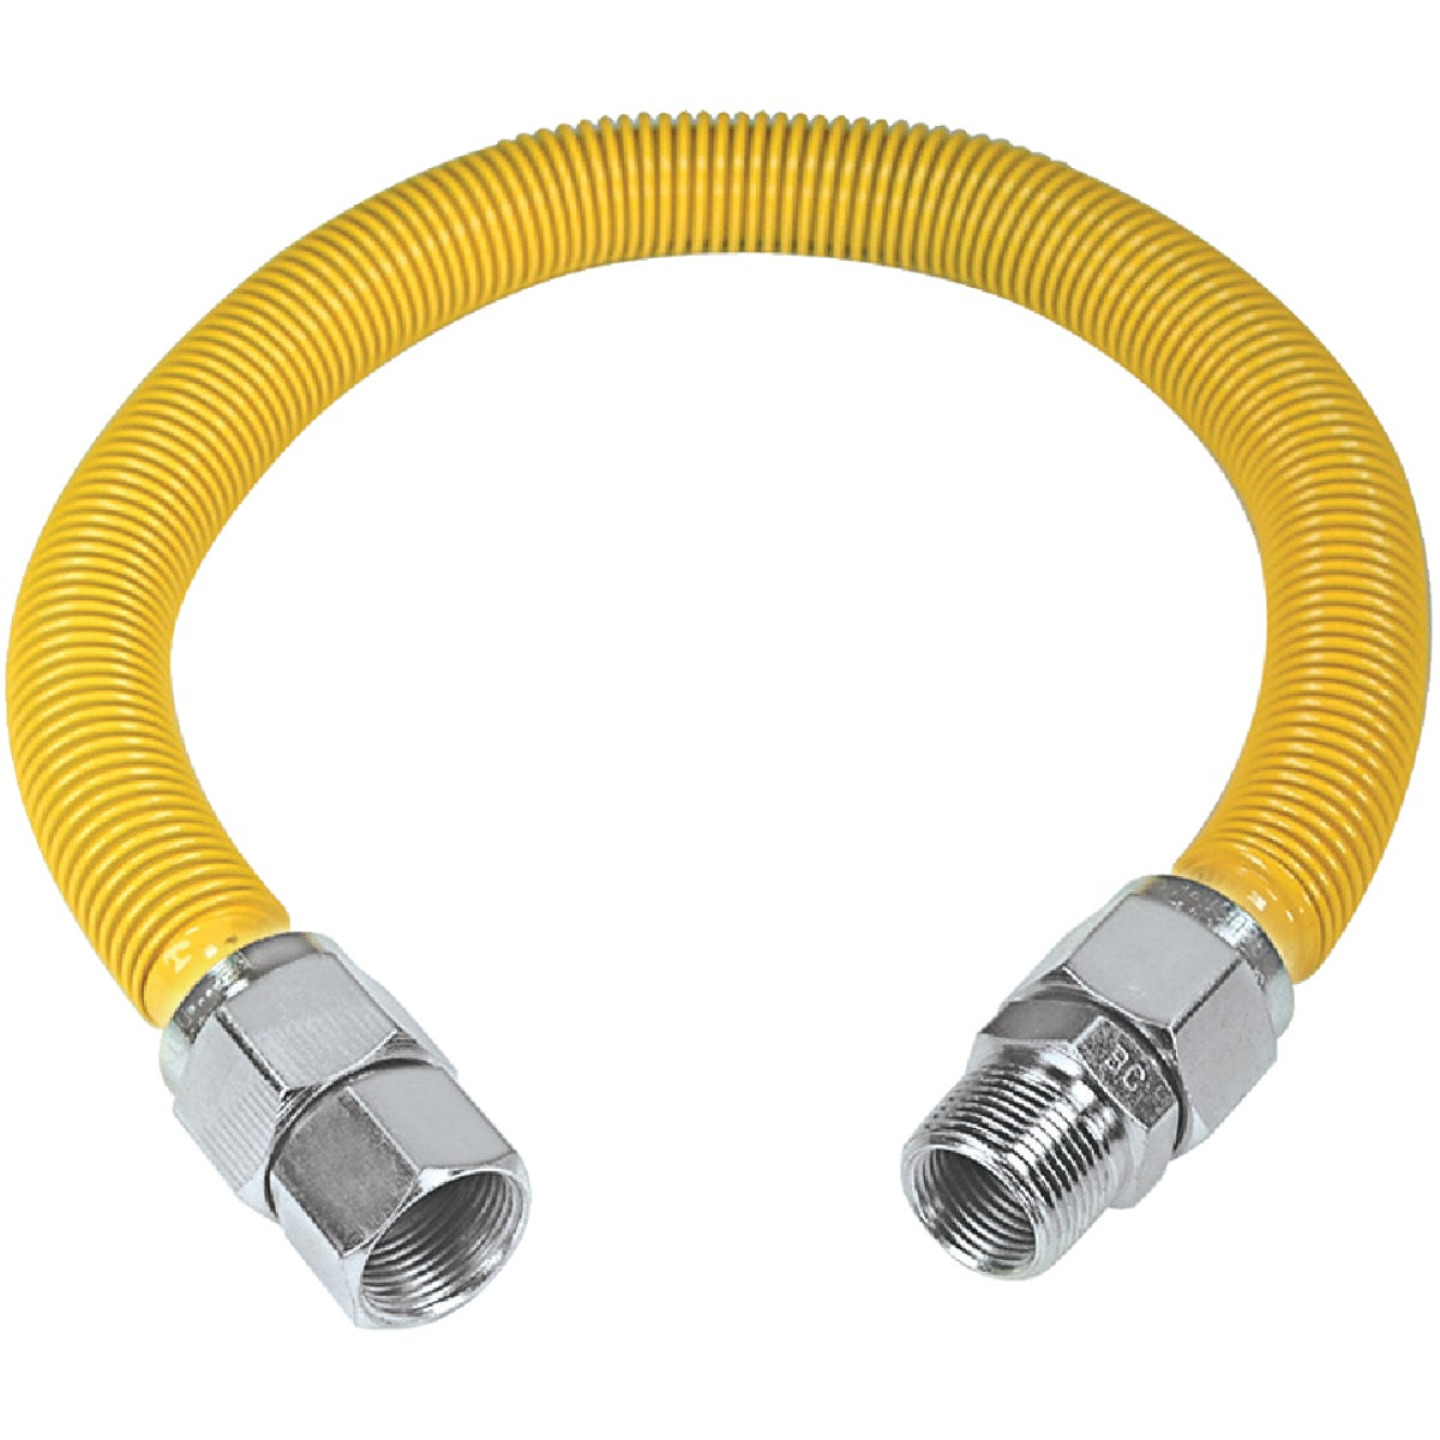 Dormont 1-1/4 In. OD x 36 In. PVC Coated Stainless Steel Gas Connector, 1 In. MIP (Tapped 3/4 In. FIP x 1 In. FIP) Image 1